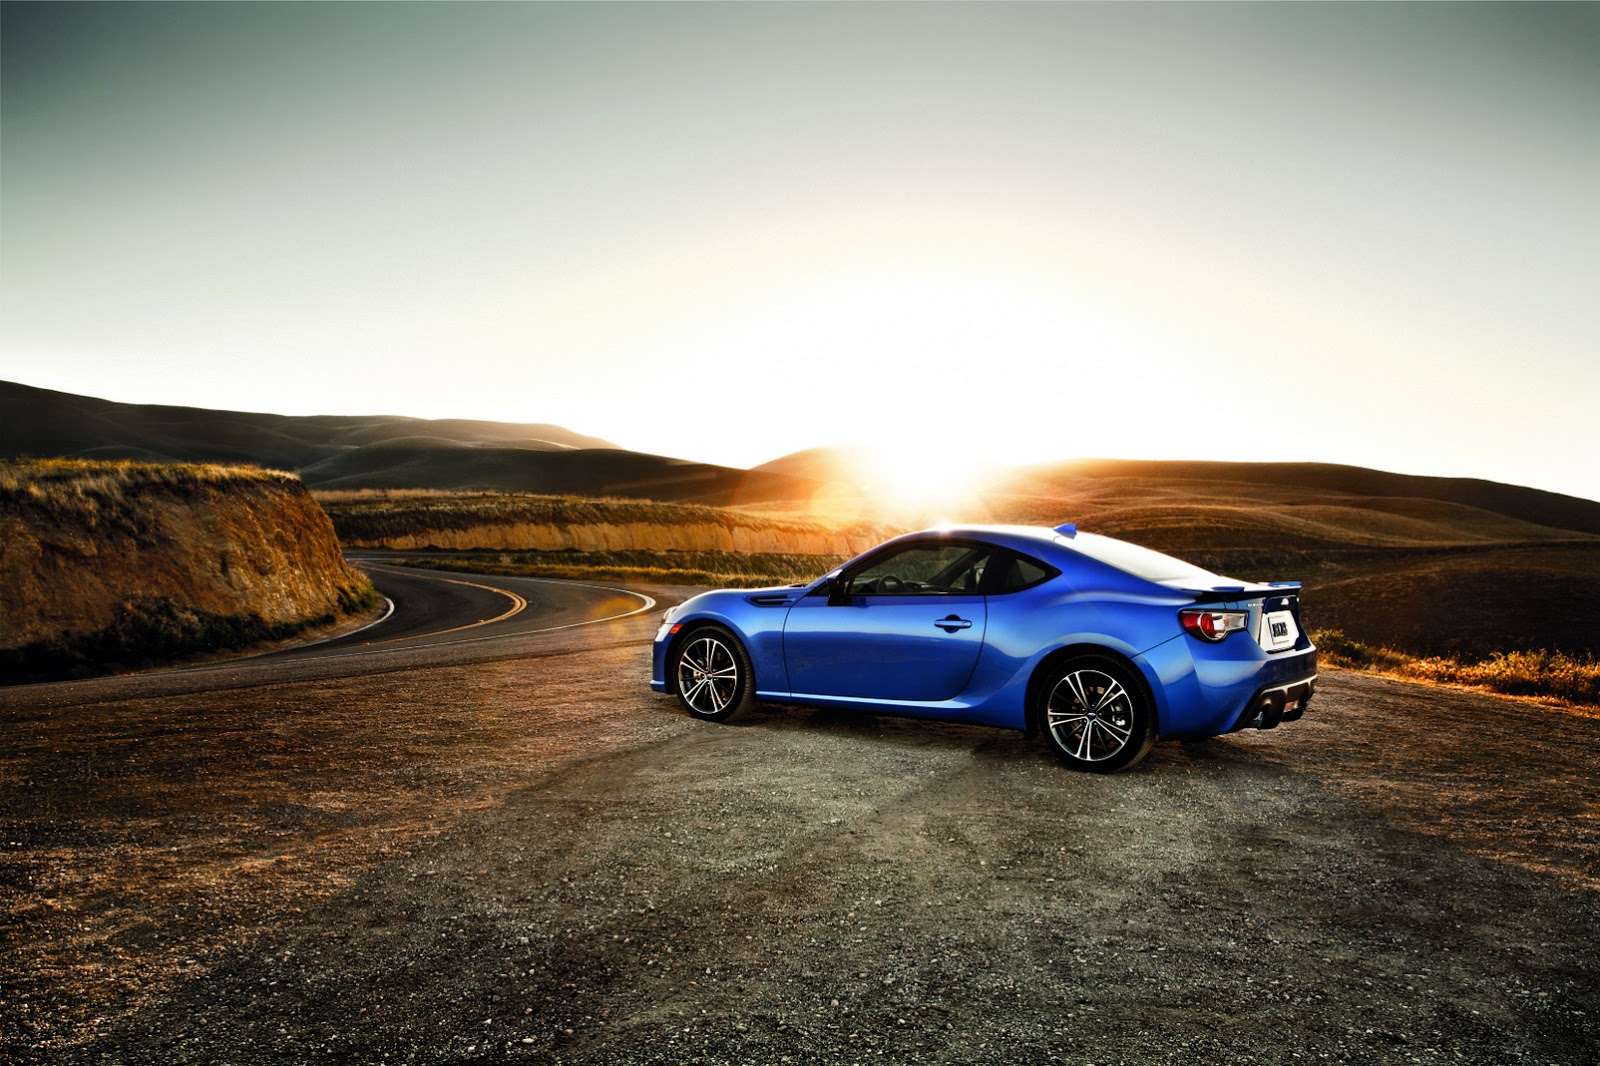 2016 subaru brz gains new tech features drops 300 in price carscoops. Black Bedroom Furniture Sets. Home Design Ideas